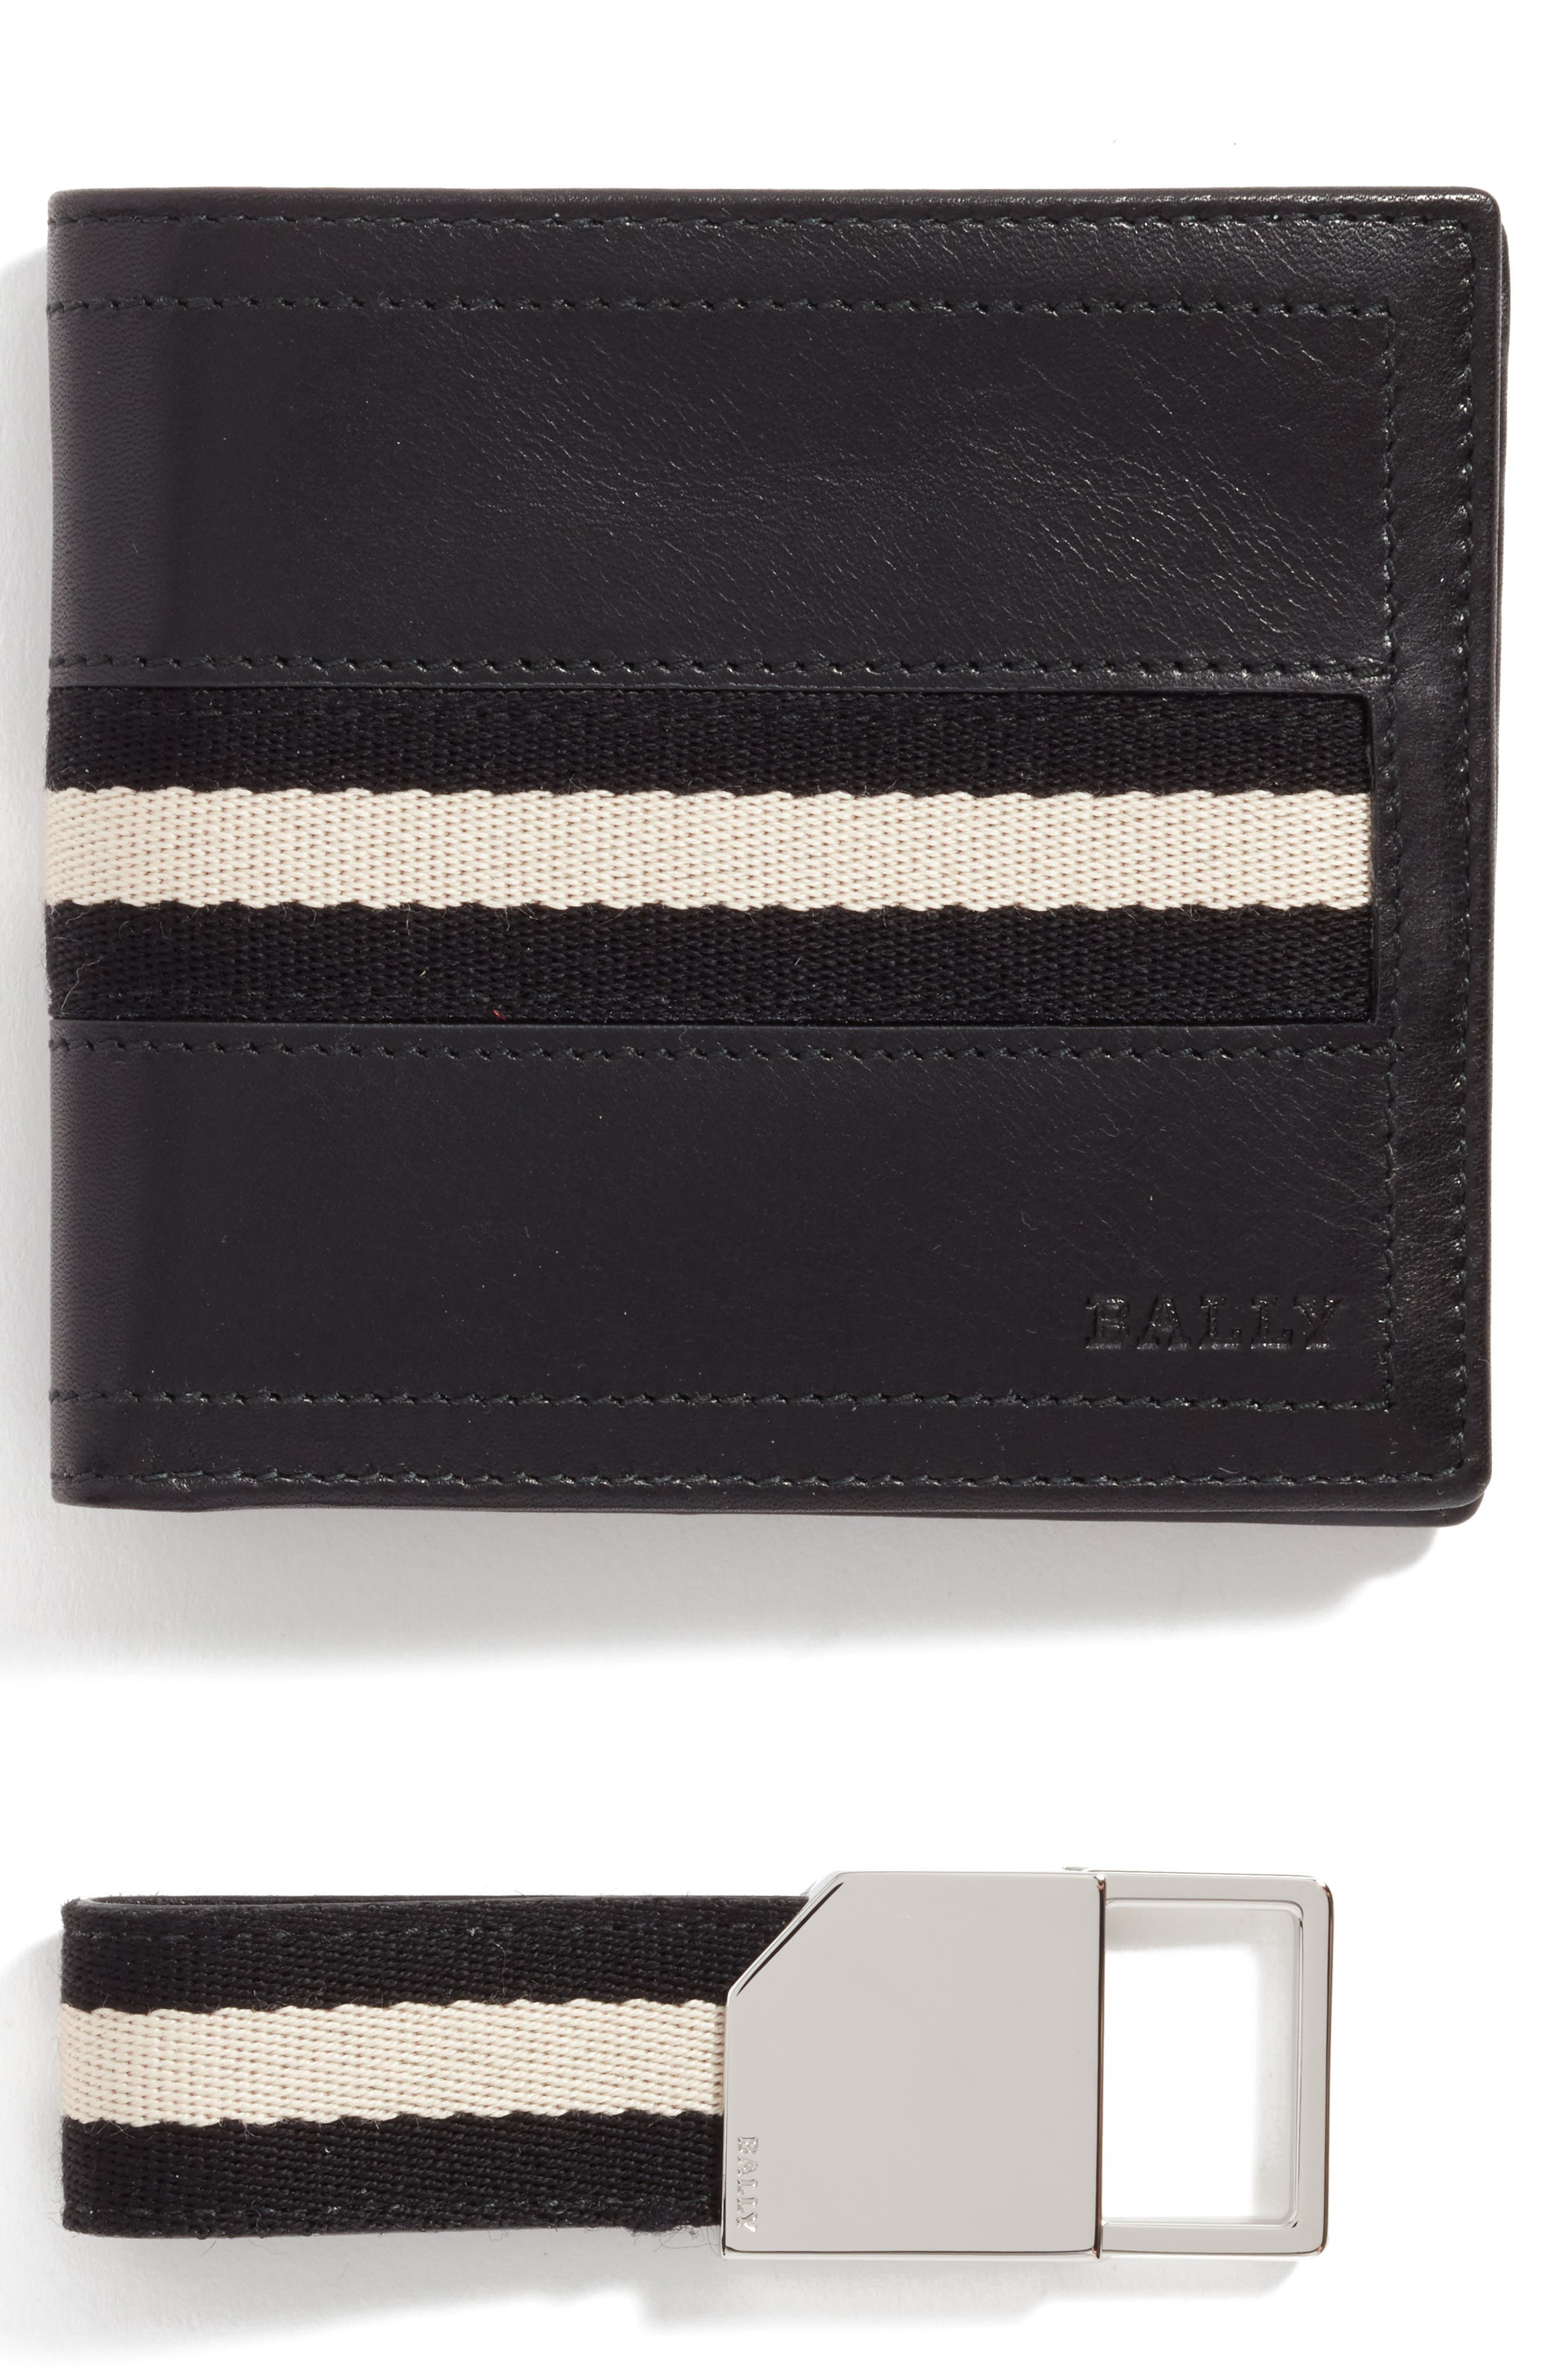 Leather Wallet and Belt Gift Set,                             Main thumbnail 1, color,                             Black